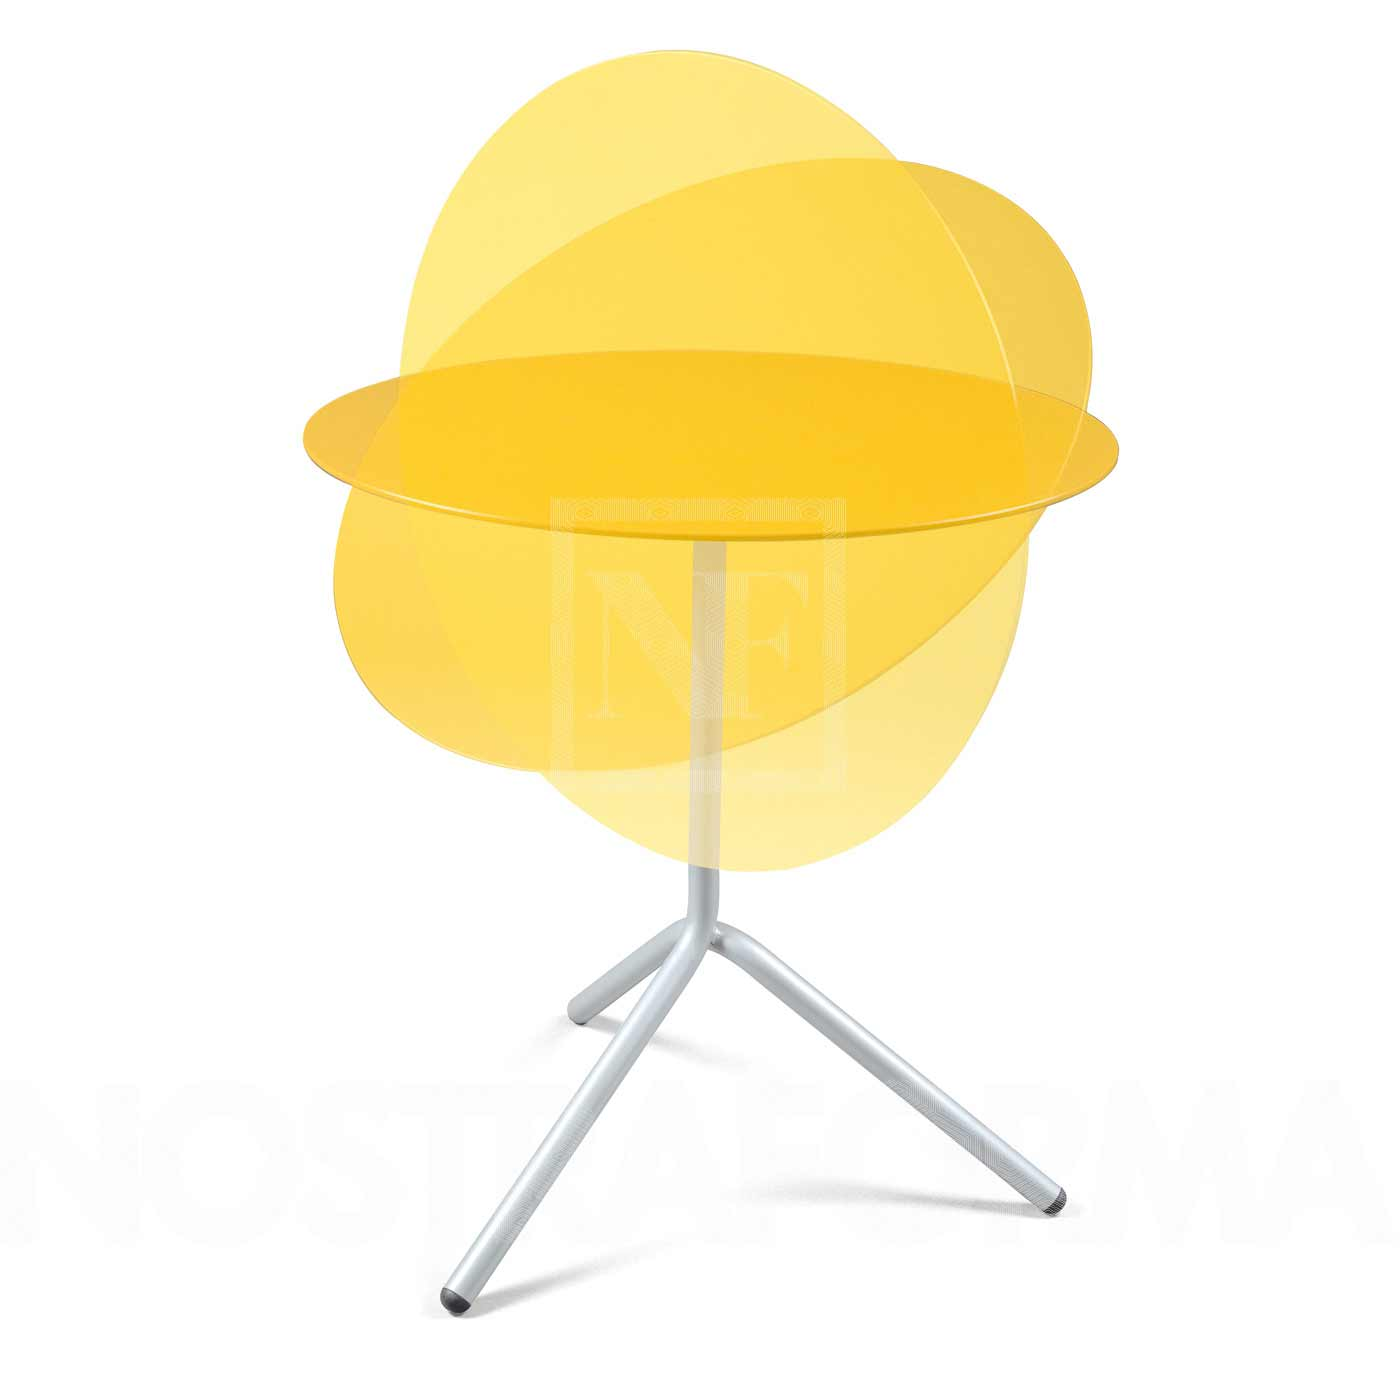 Modern and stylish yellow folding table